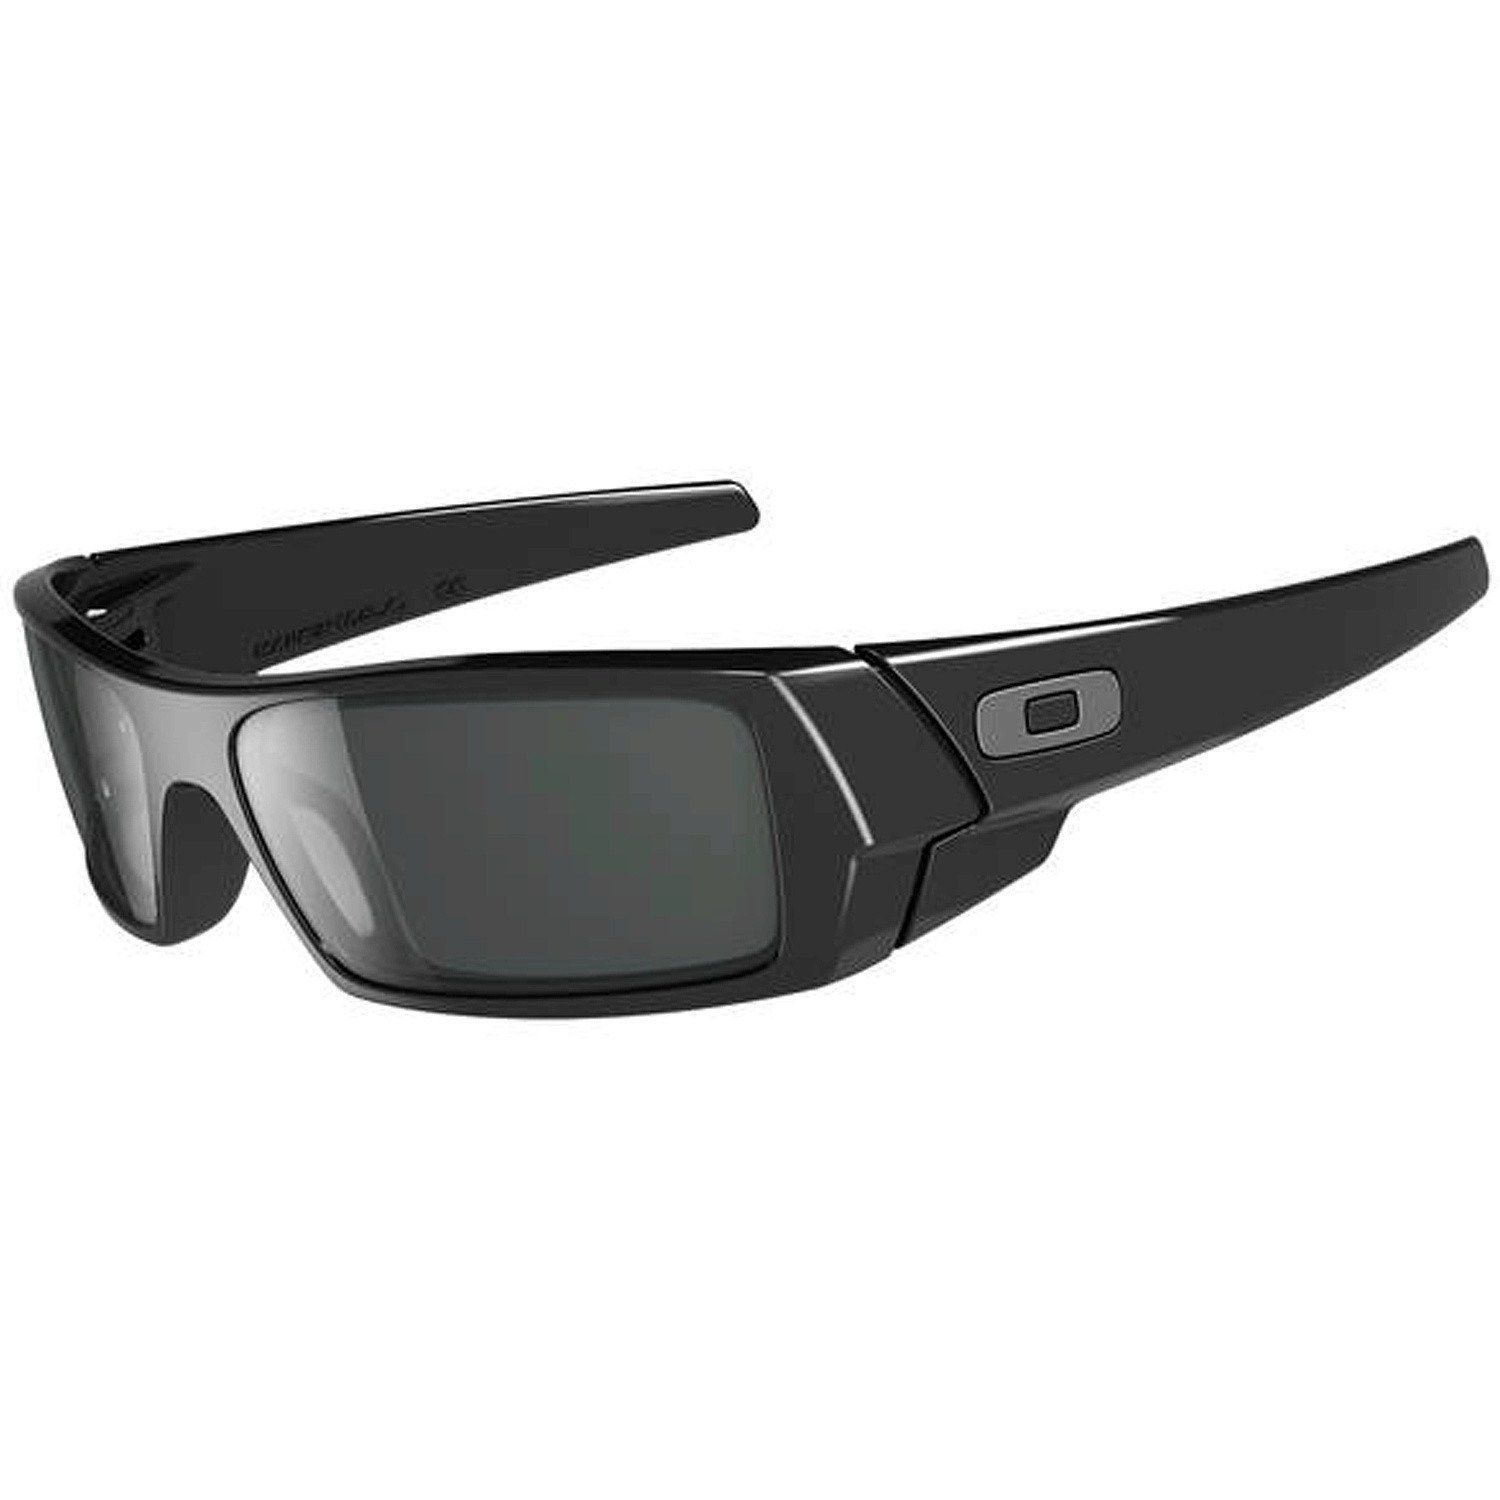 Oakley Gascan Sunglasses, Black/Gray, One Size